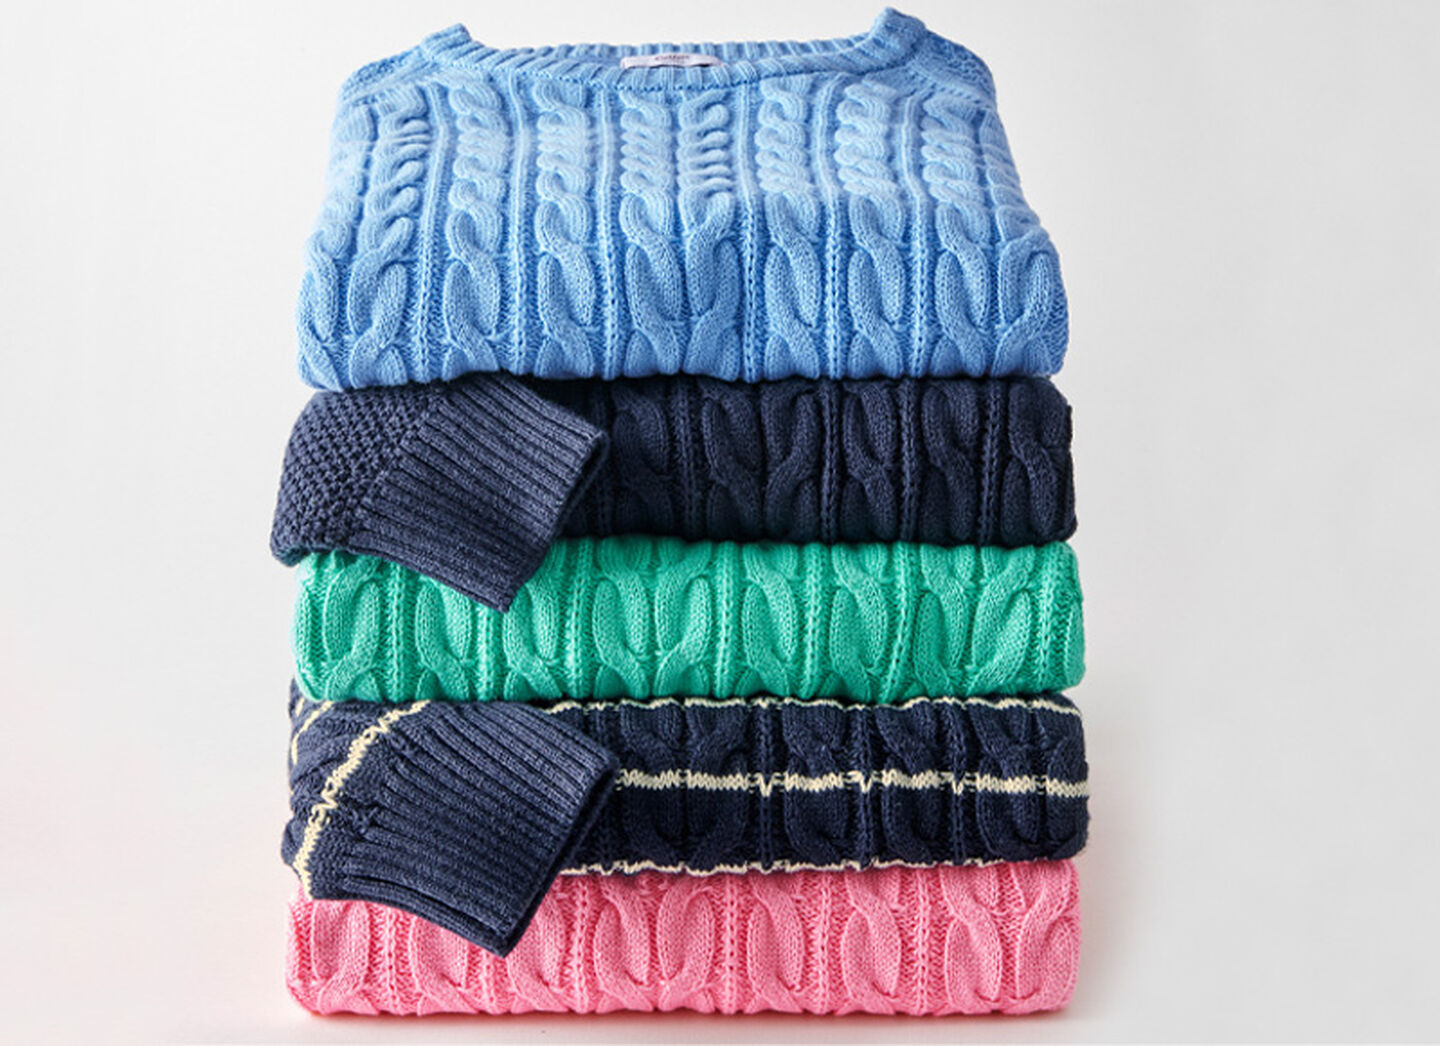 Knitwear Inspirations | Cotton Cable Crew Neck Jumper | Cotton Cable Stripe Crew Neck Jumper | Cotton Cable Zip Through Cardigan | By Cotton Traders